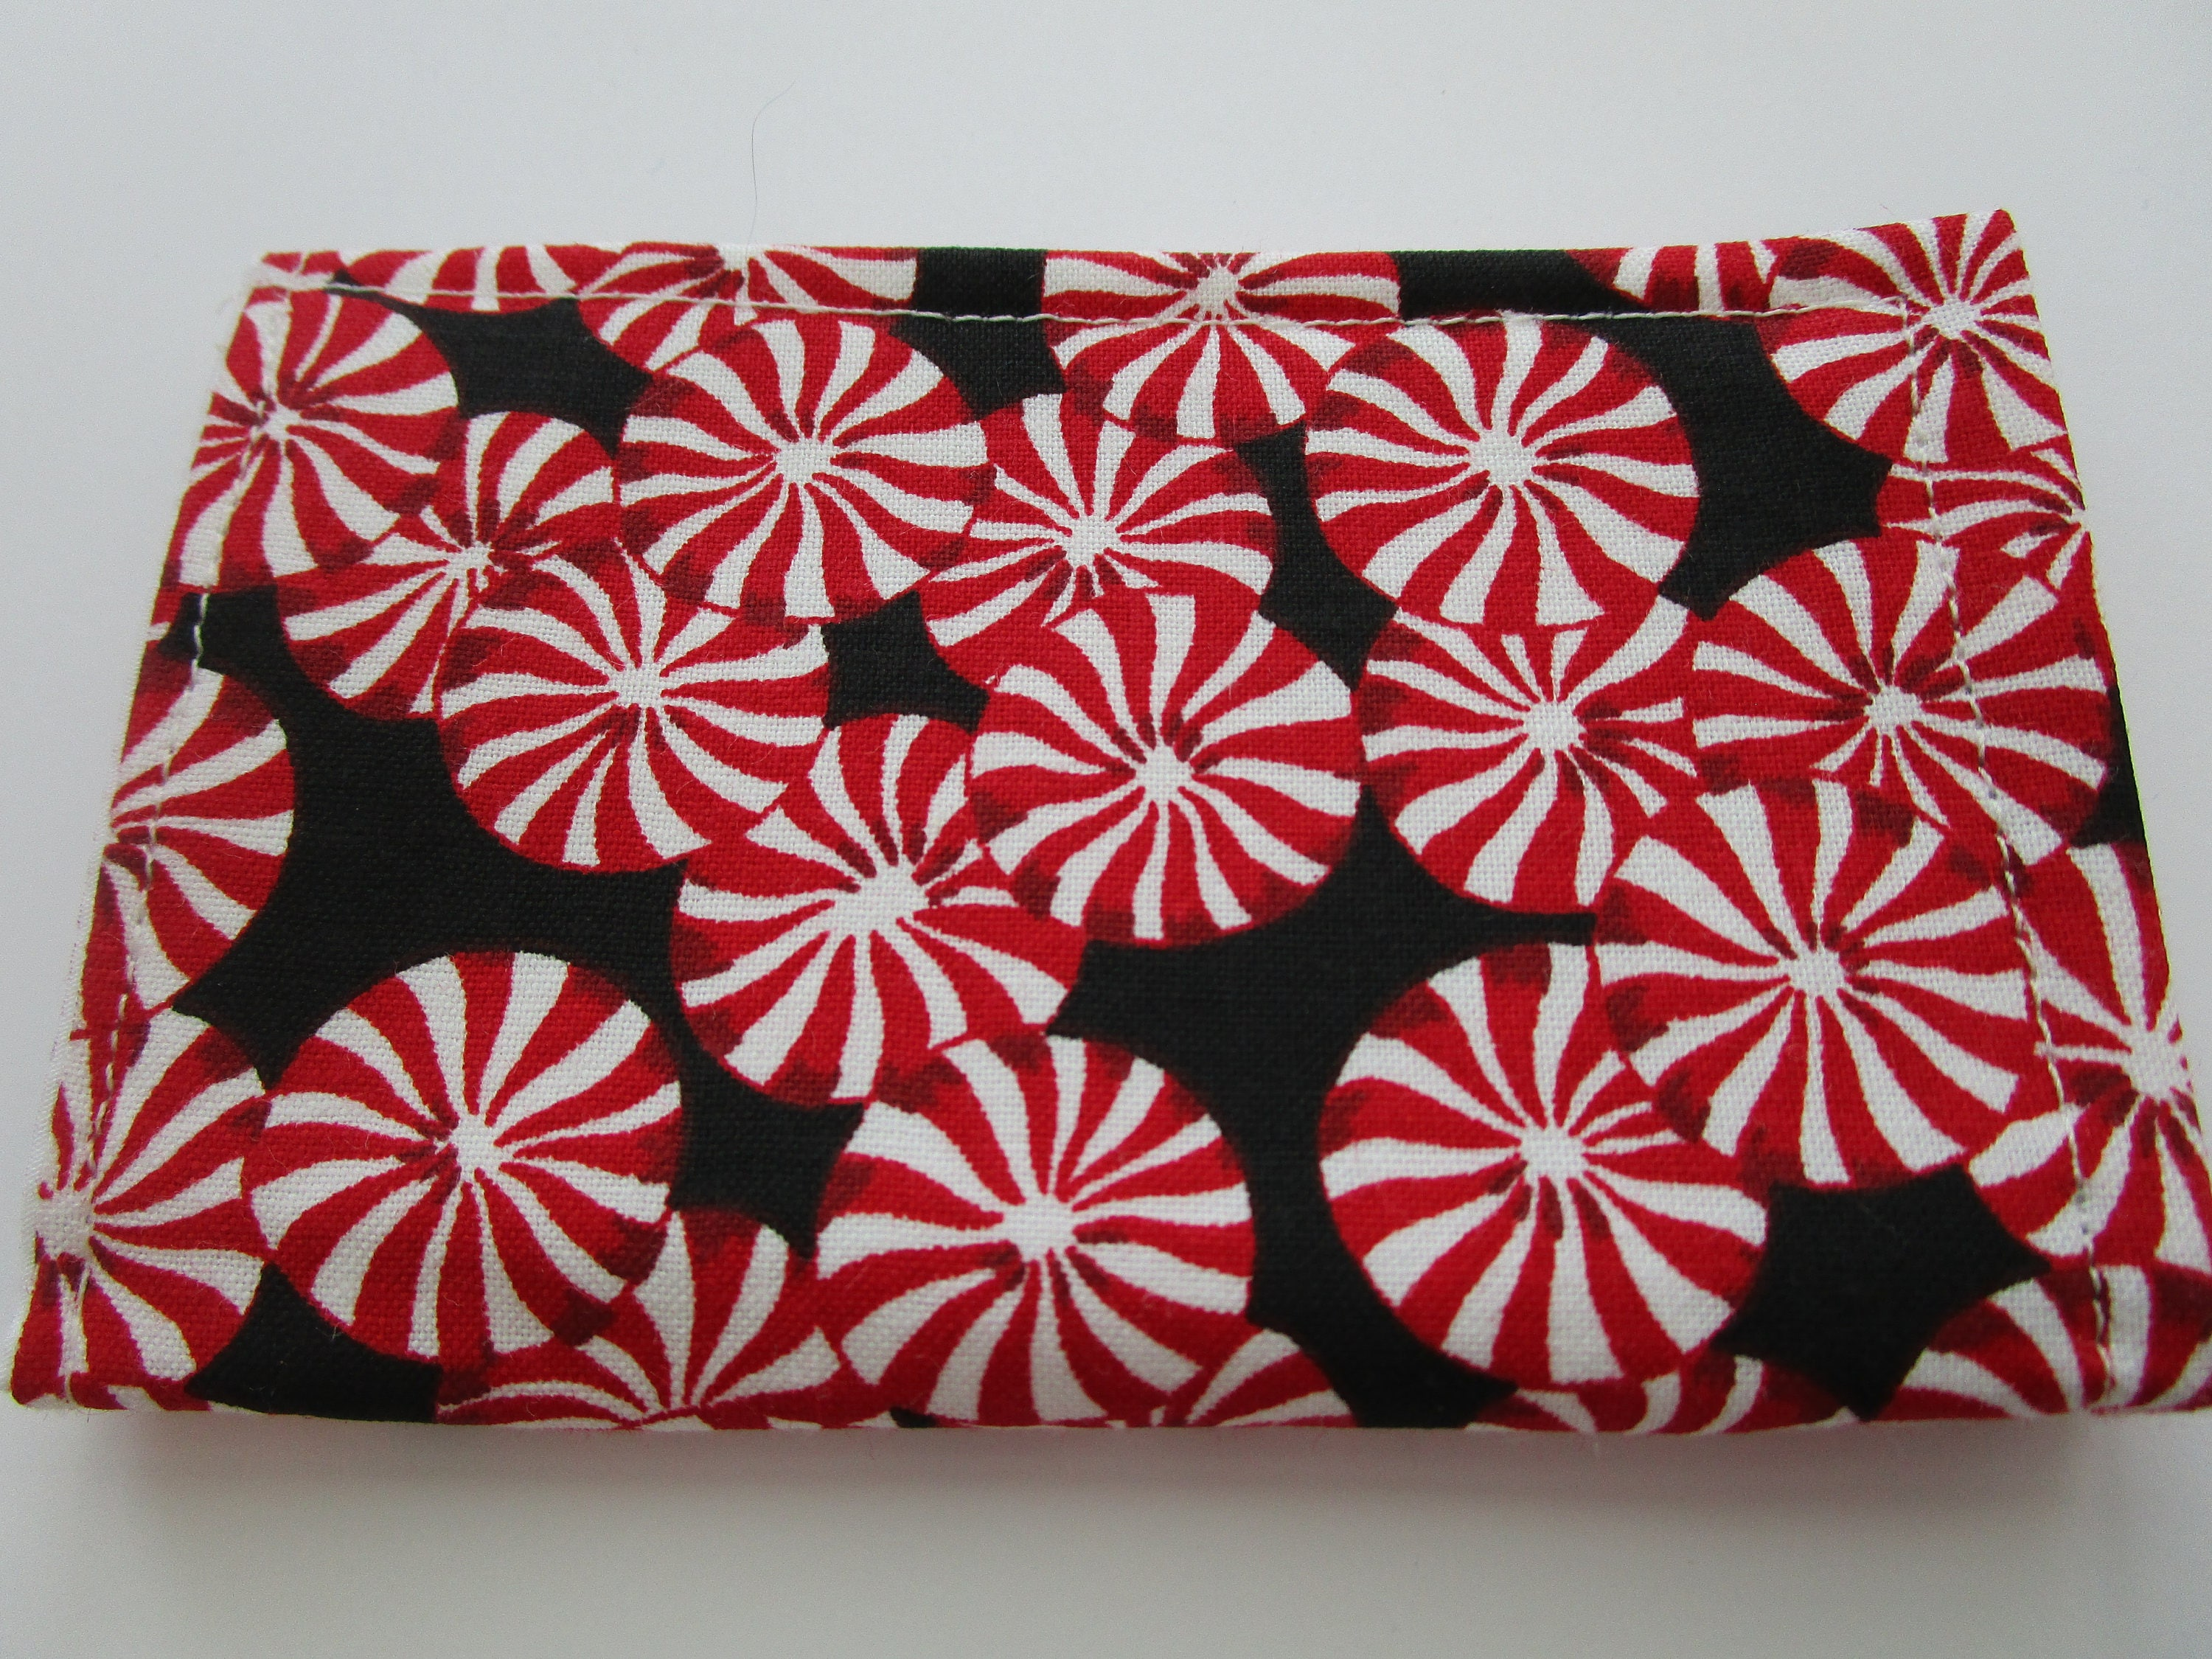 peppermint candy starlight mints fabric wallet can s loyalty